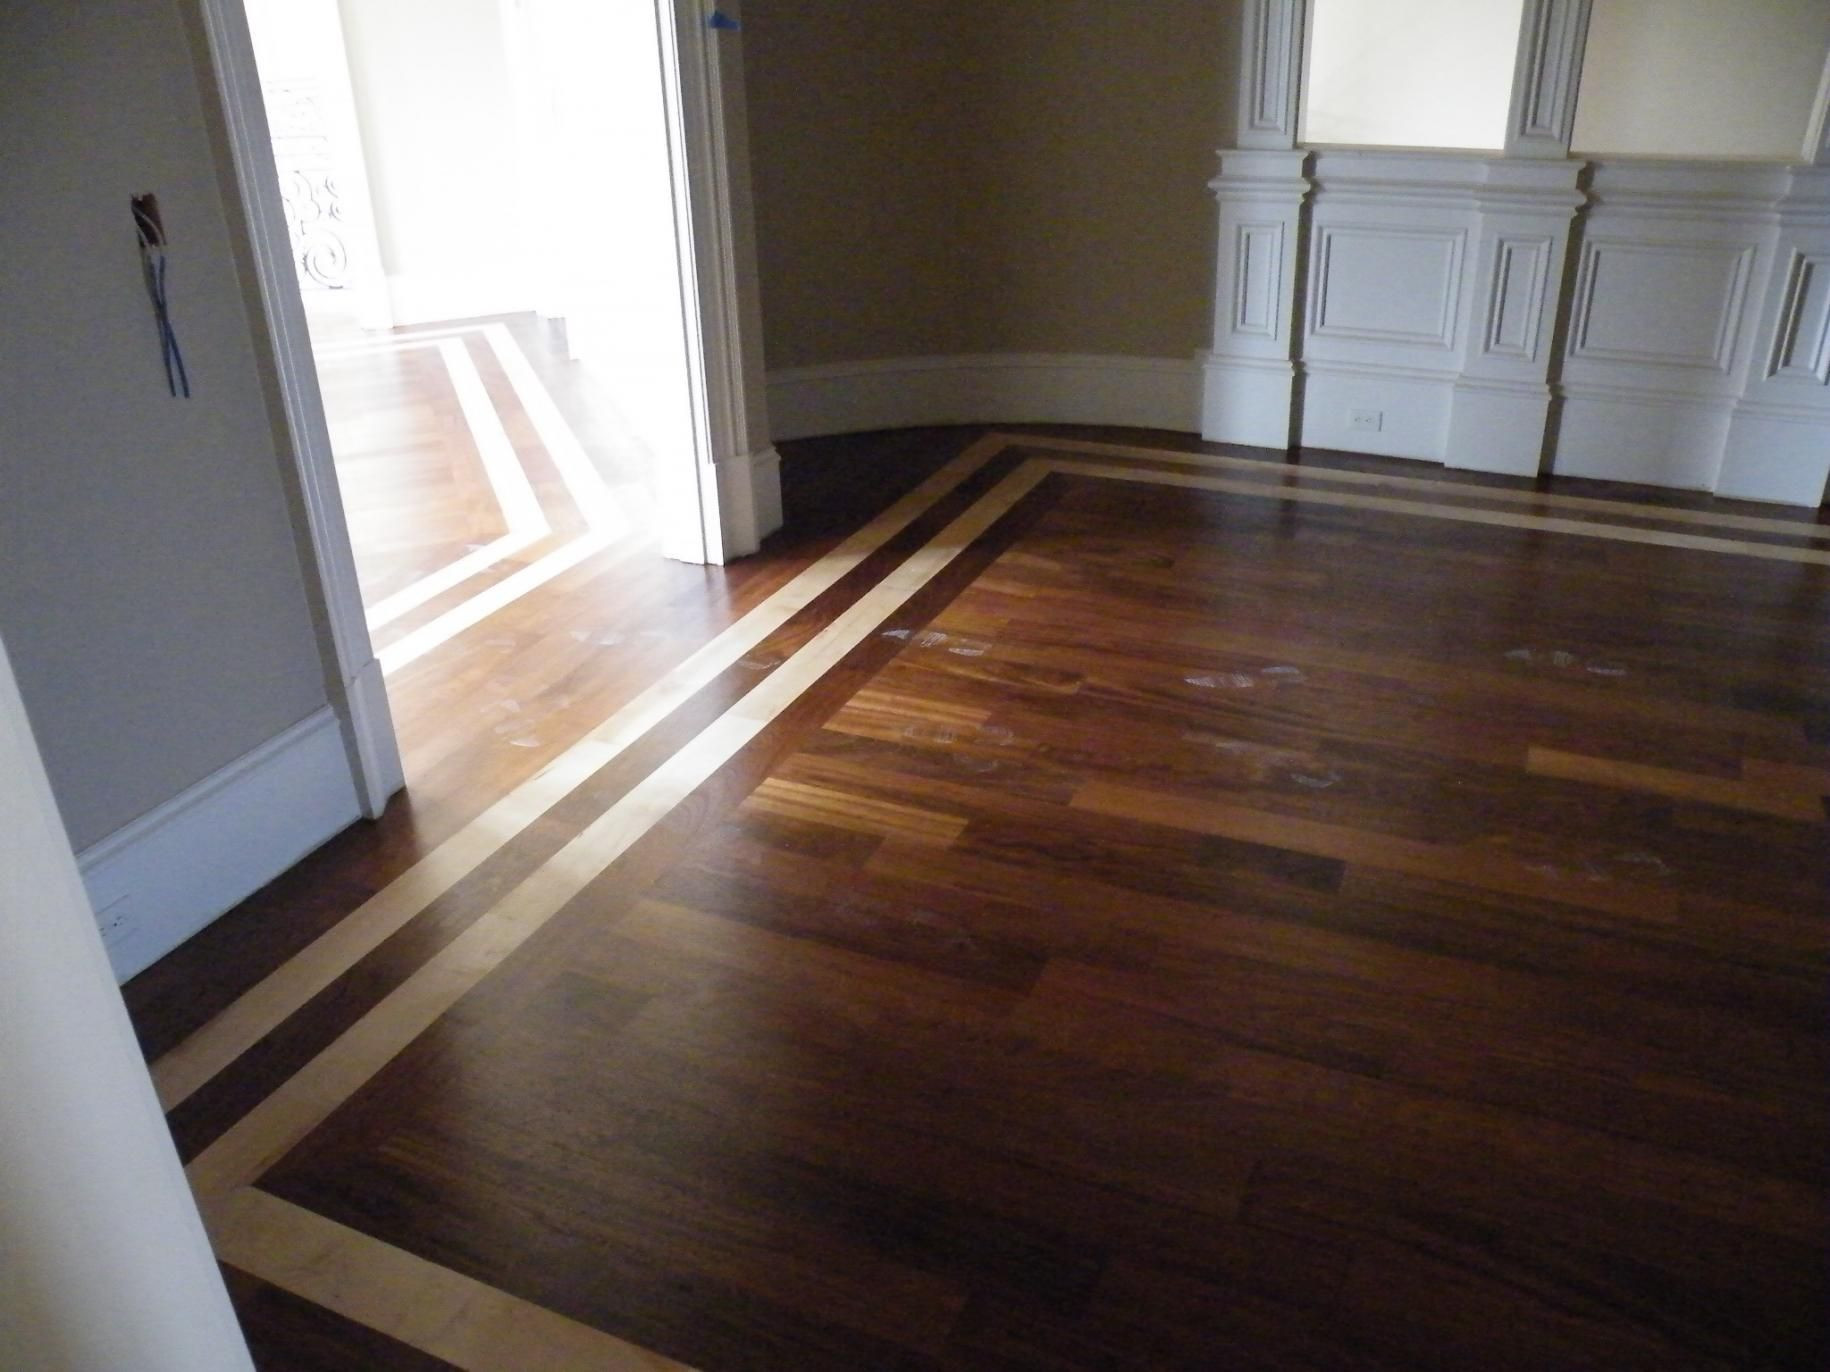 Dark Hardwood Floors Cost Of Wood Floor Borders Hardwood Floor Inlay Flooring Contractor for Wood Floor Borders Hardwood Floor Inlay Flooring Contractor Talk